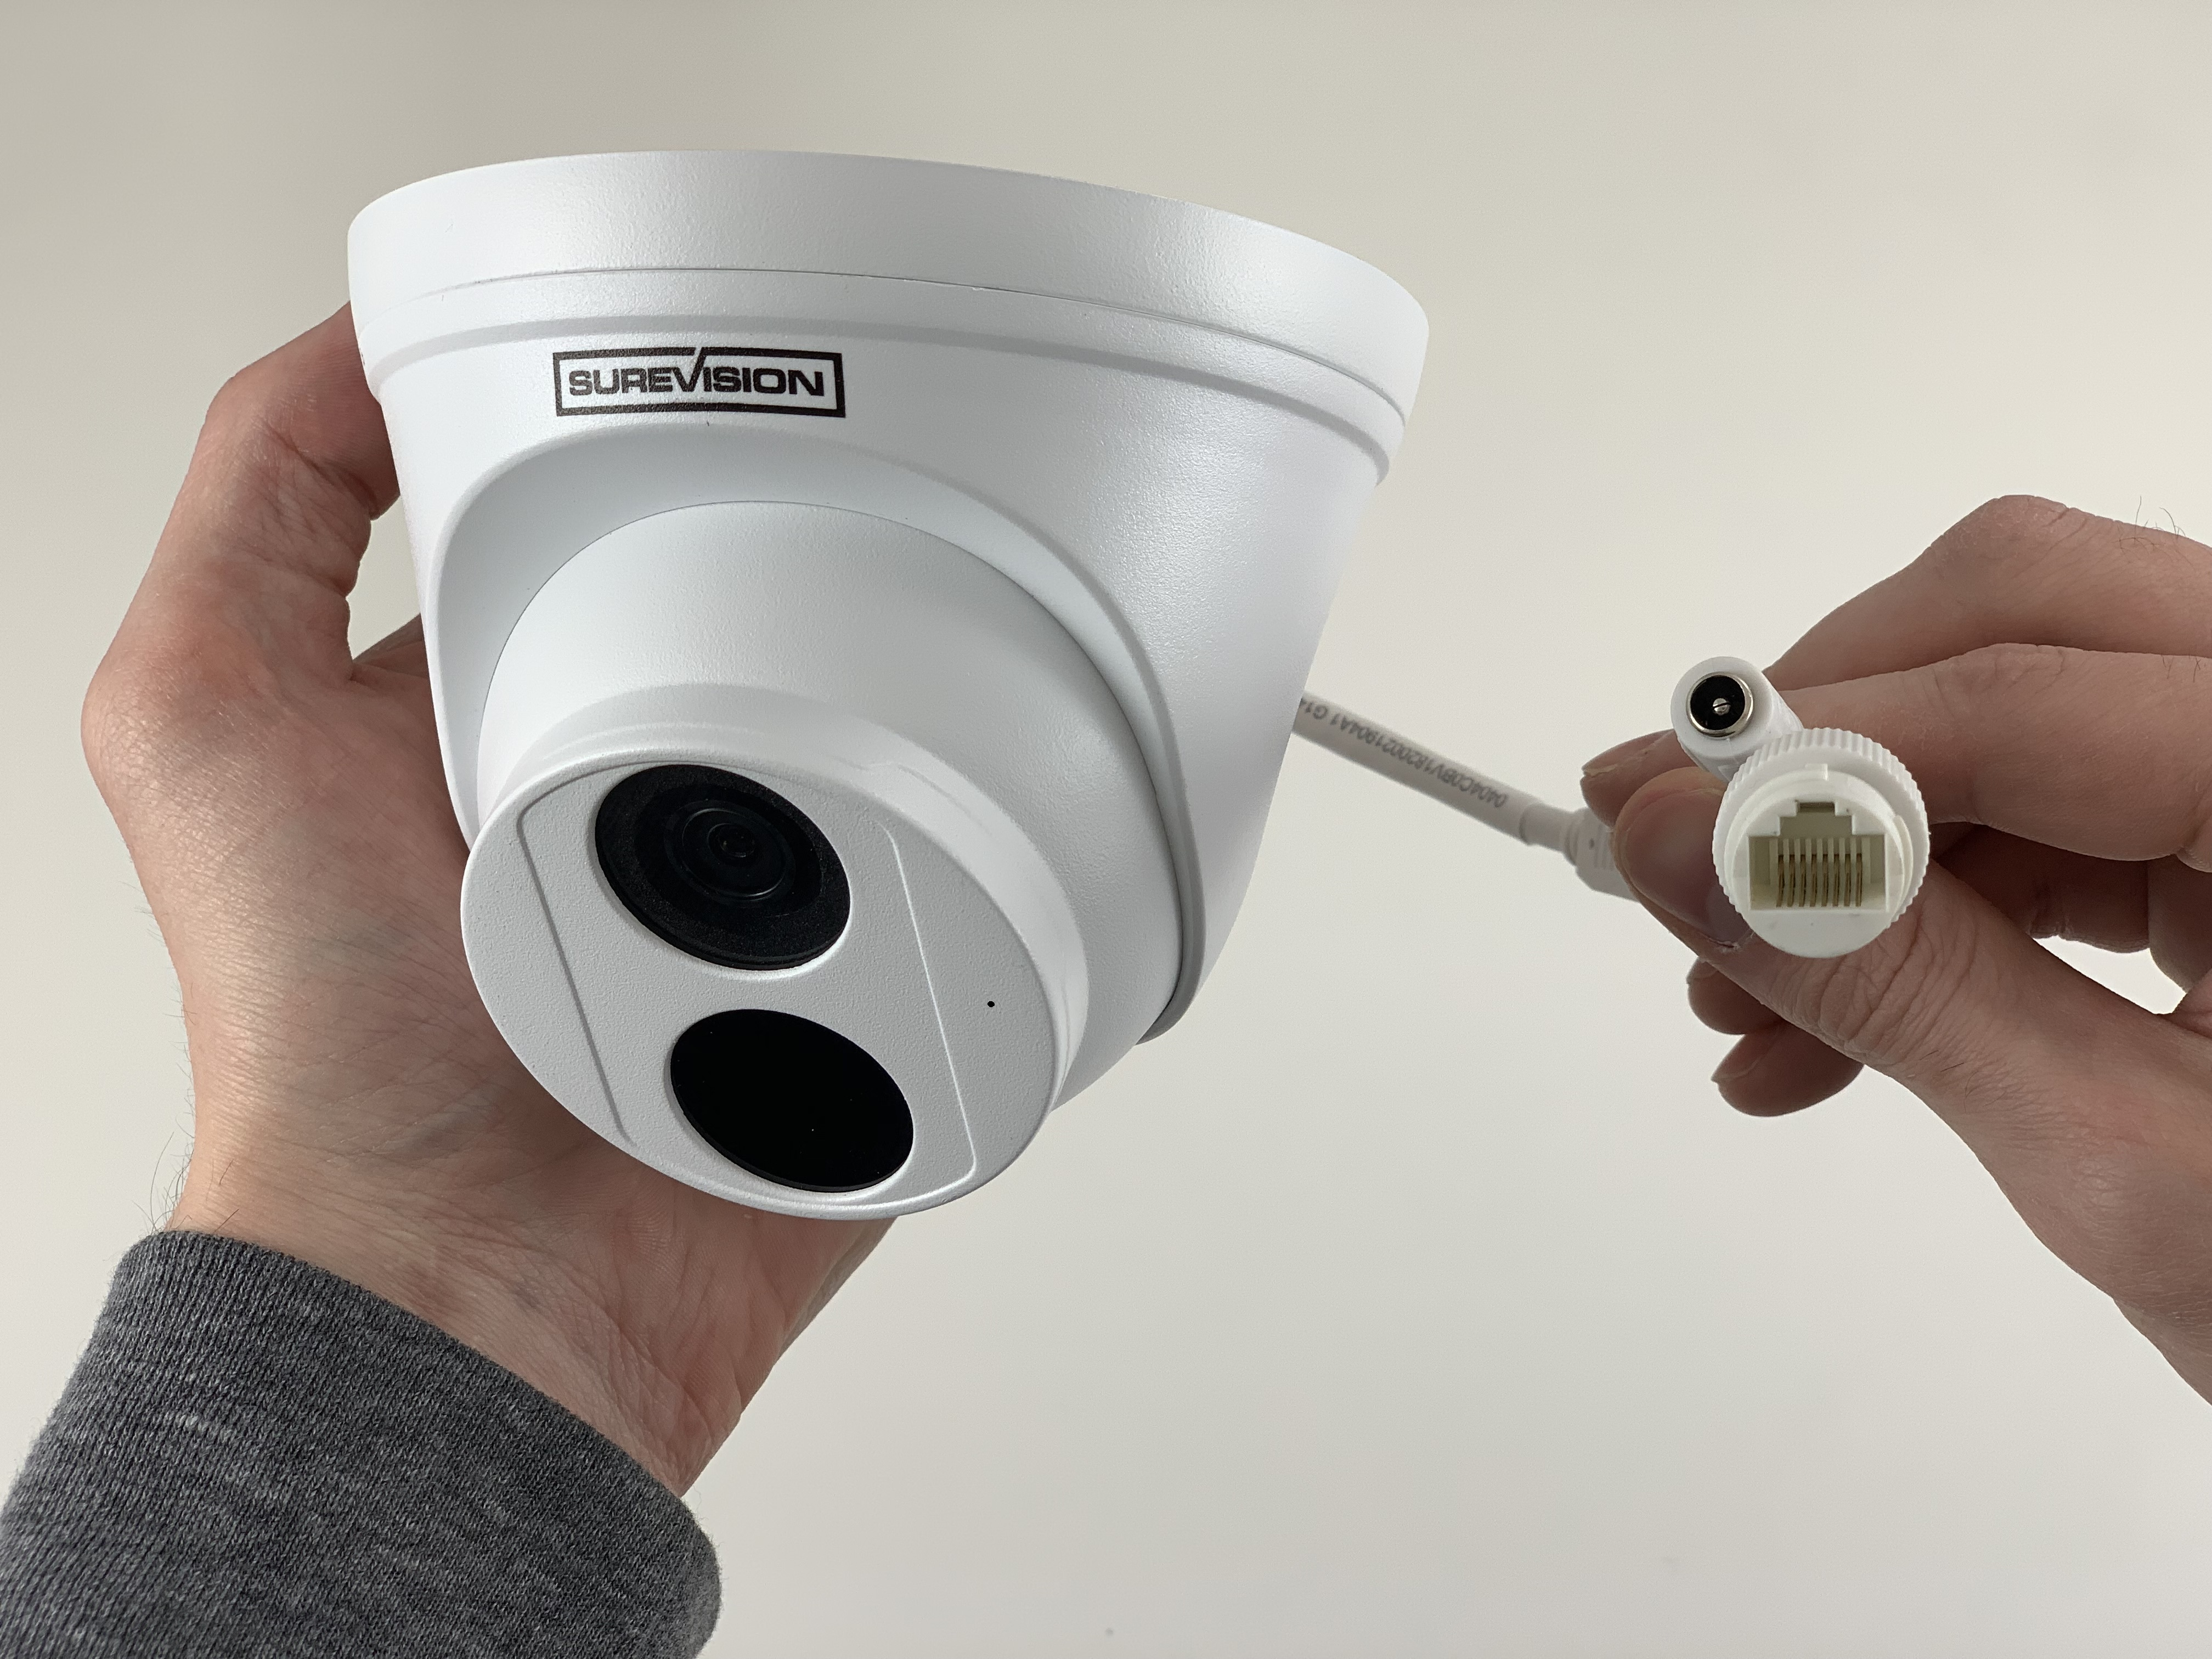 4 MP Wide Angle Dome IP Camera with Starlight 100 Foot Night Vision and Built-in Microphone